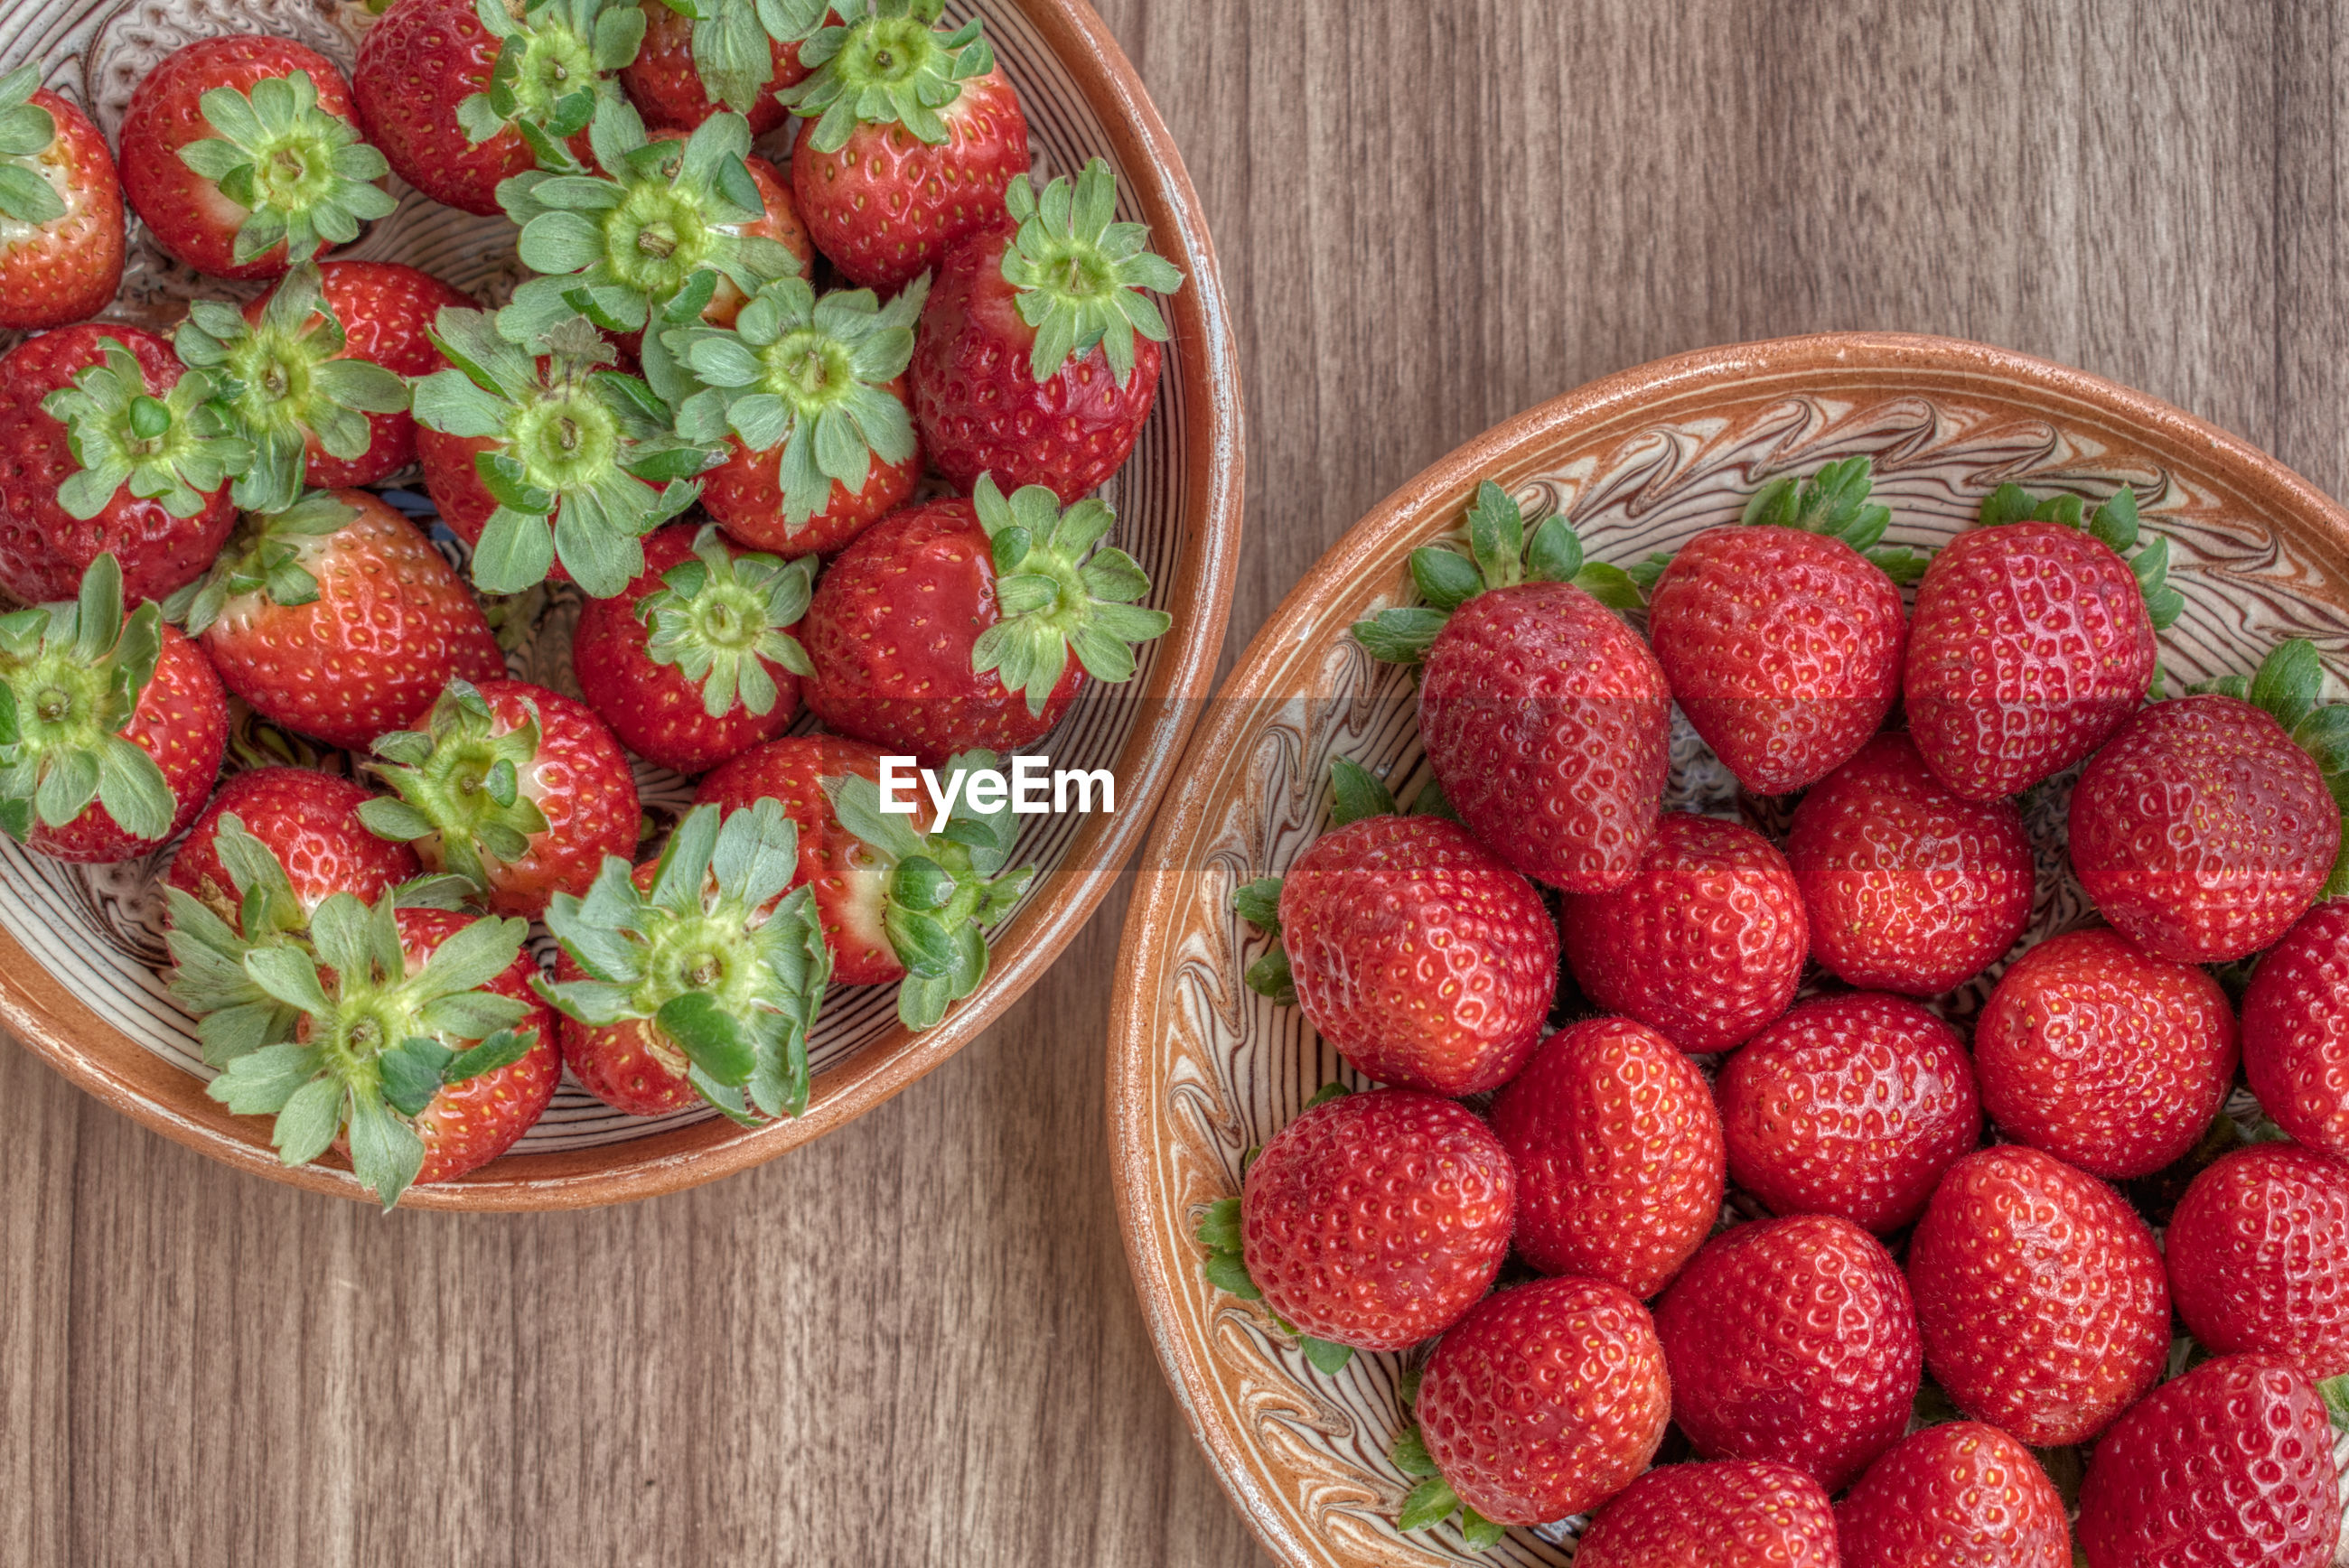 Fresh strawberry in a clay plate on wooden table